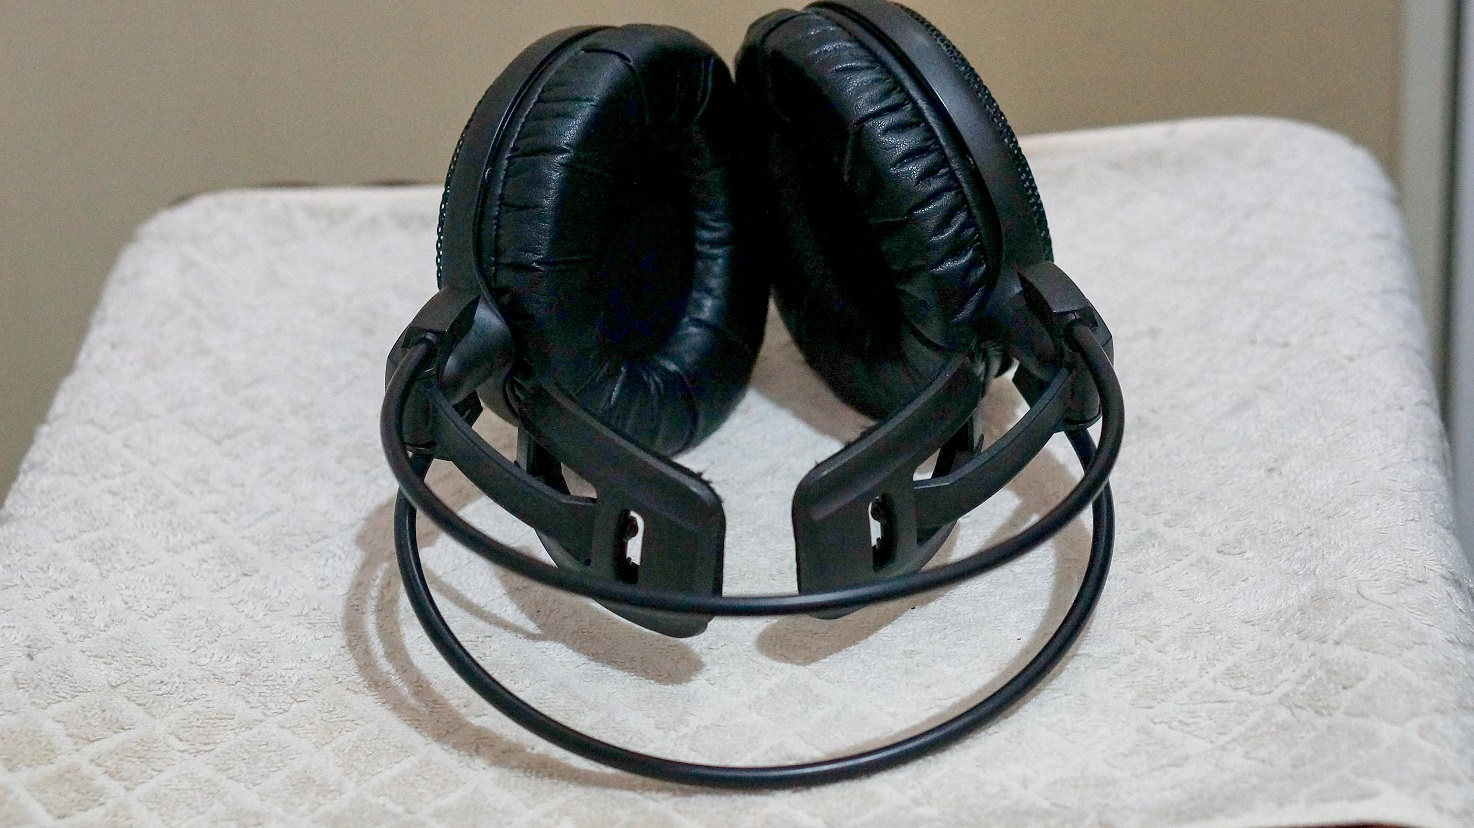 Audio Technica AD900x wing headband